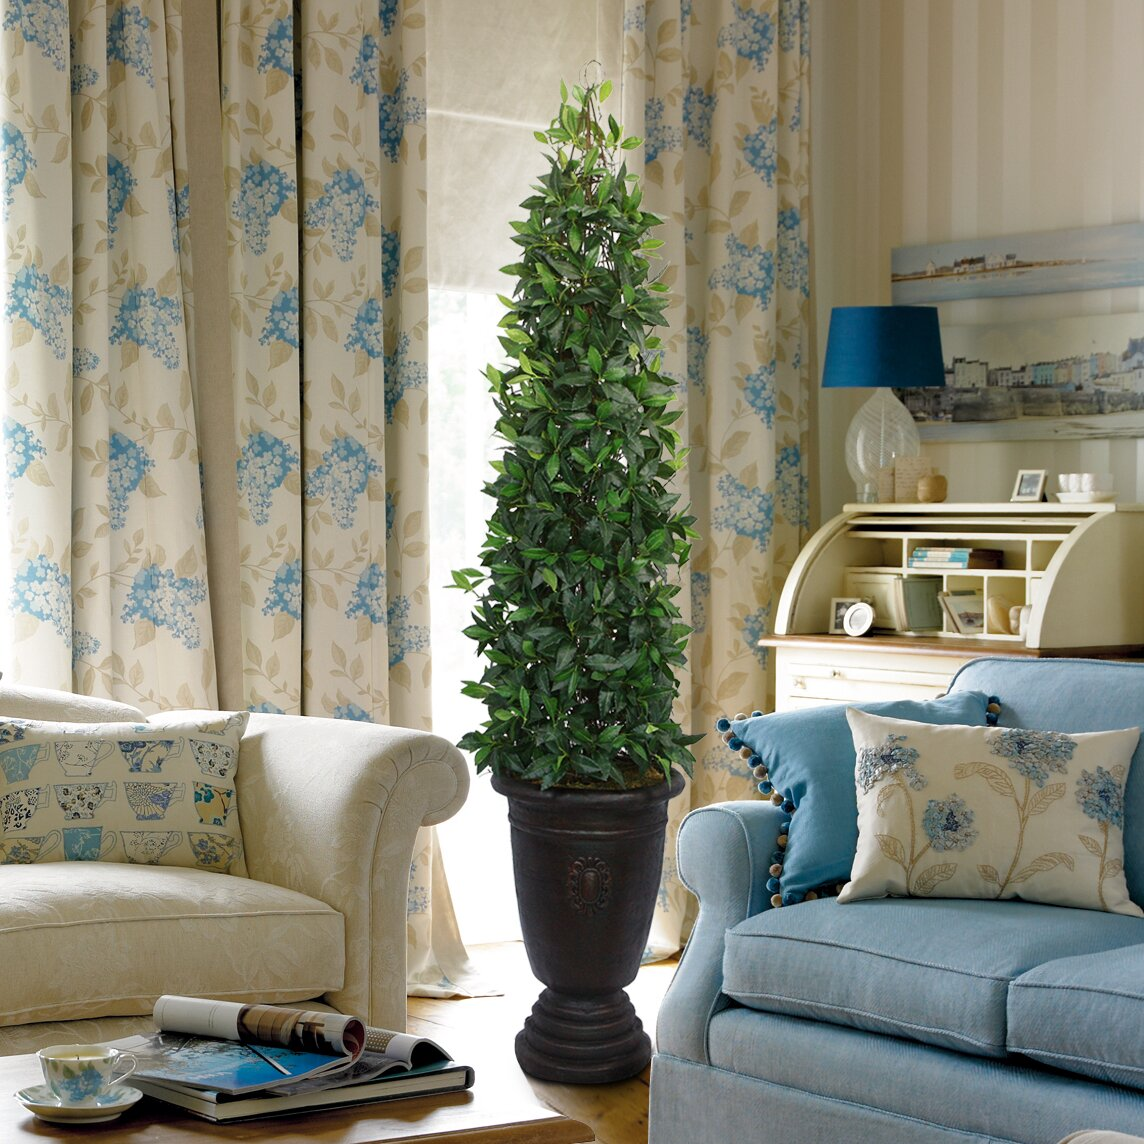 laura ashley home silk bay leaf tower vine topiary in urn reviews wayfair. Black Bedroom Furniture Sets. Home Design Ideas